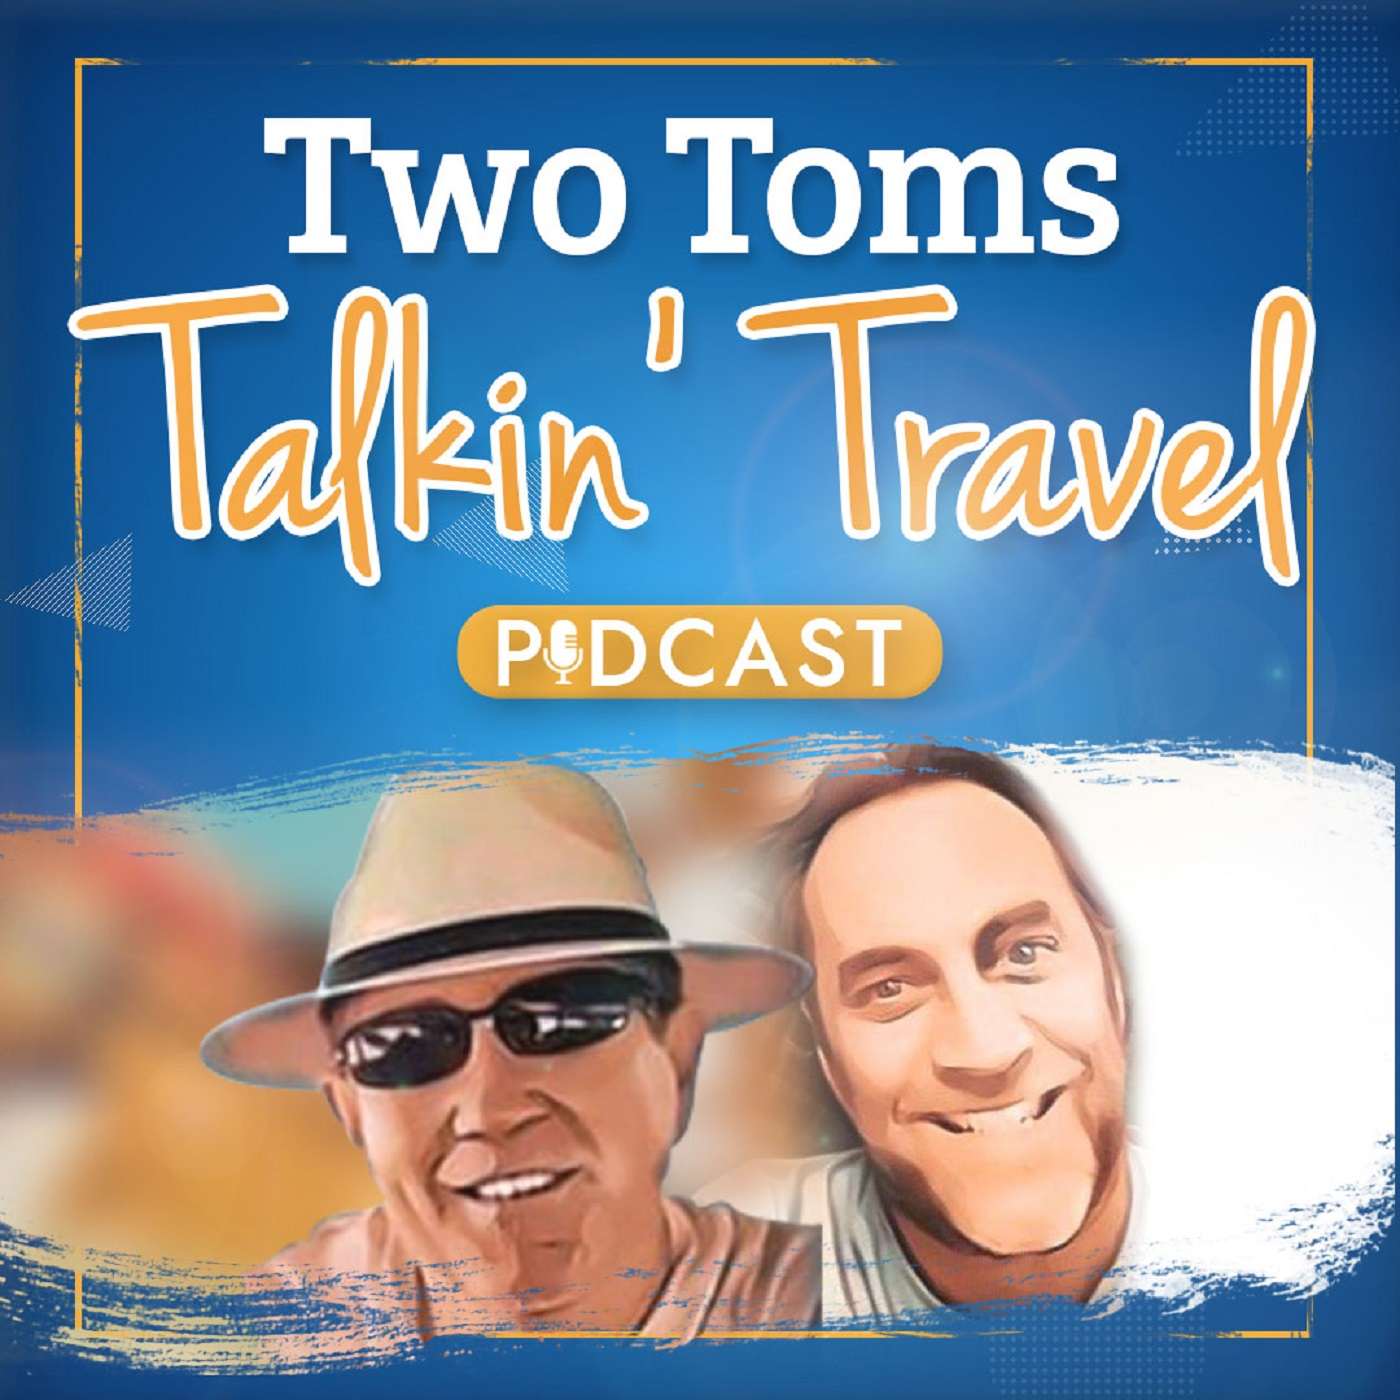 Show artwork for Two Tom's Talkin' Travel